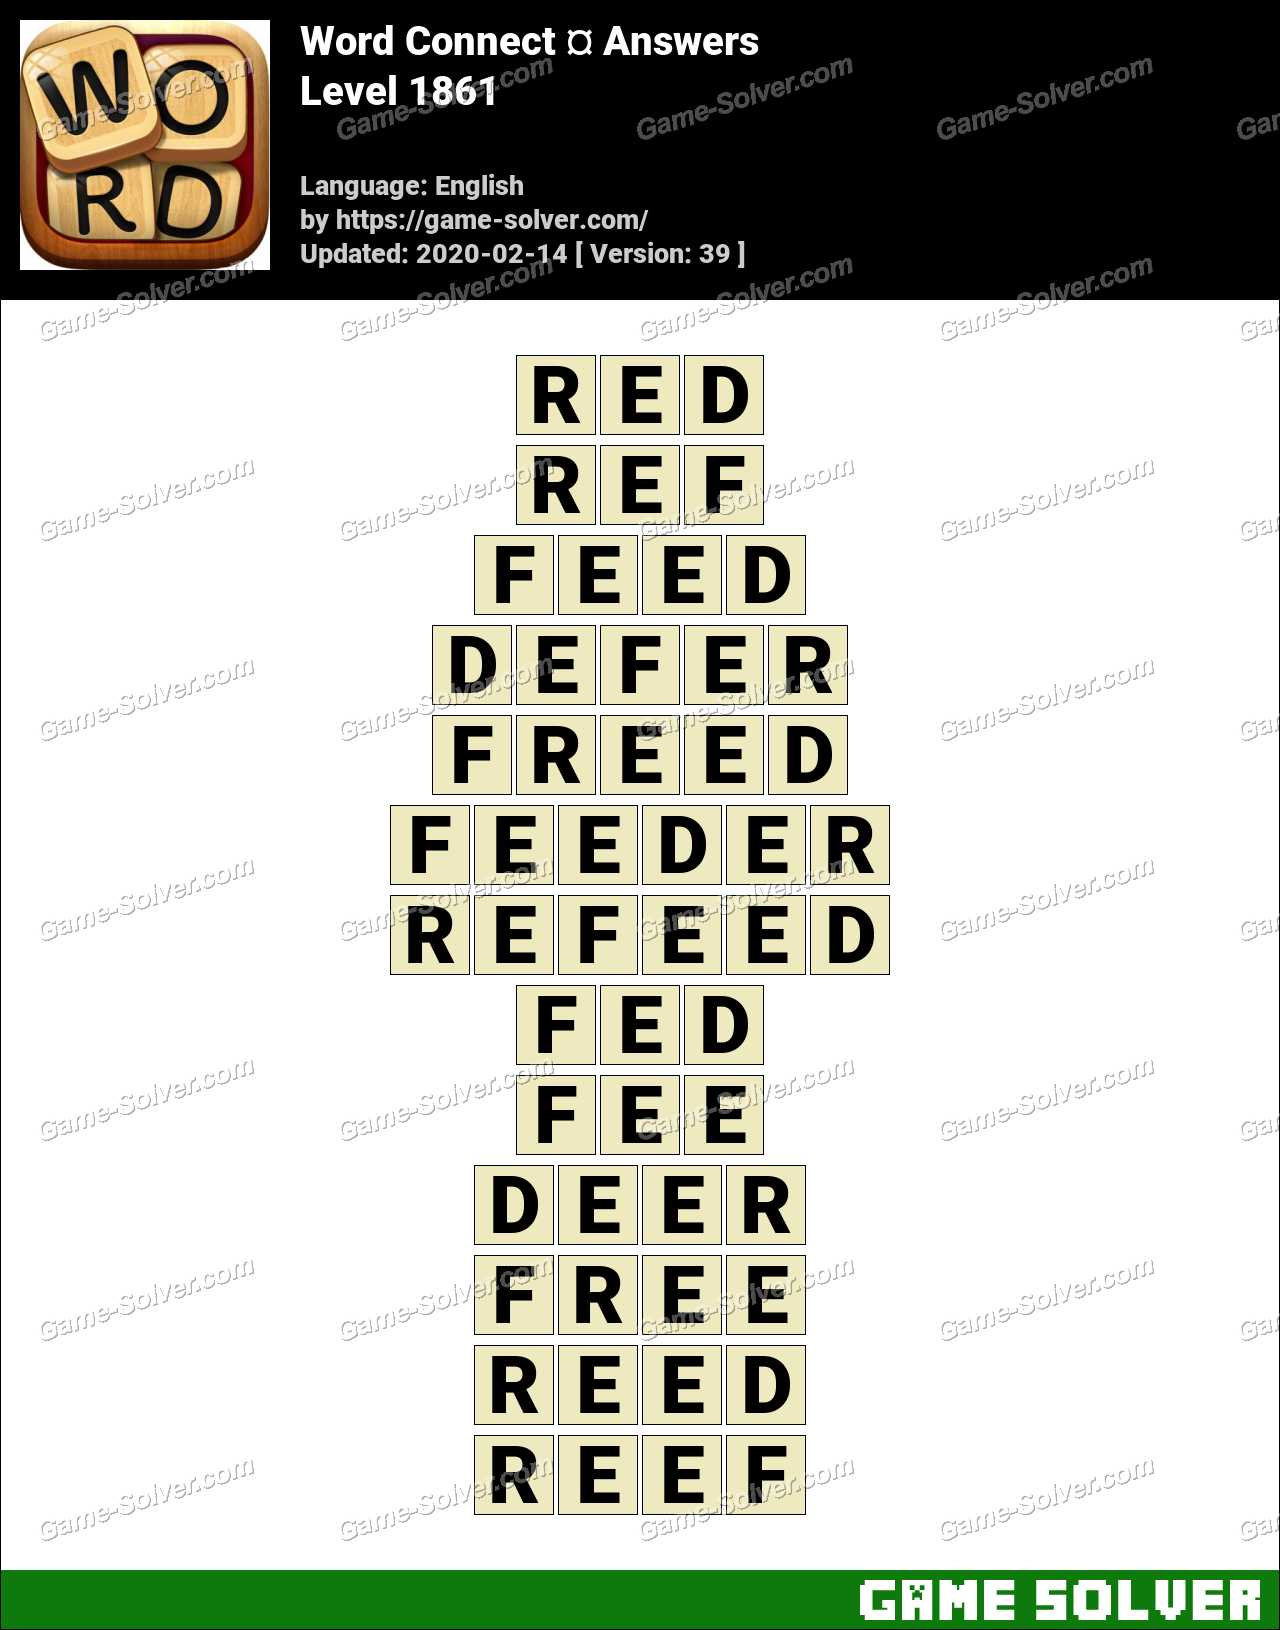 Word Connect Level 1861 Answers